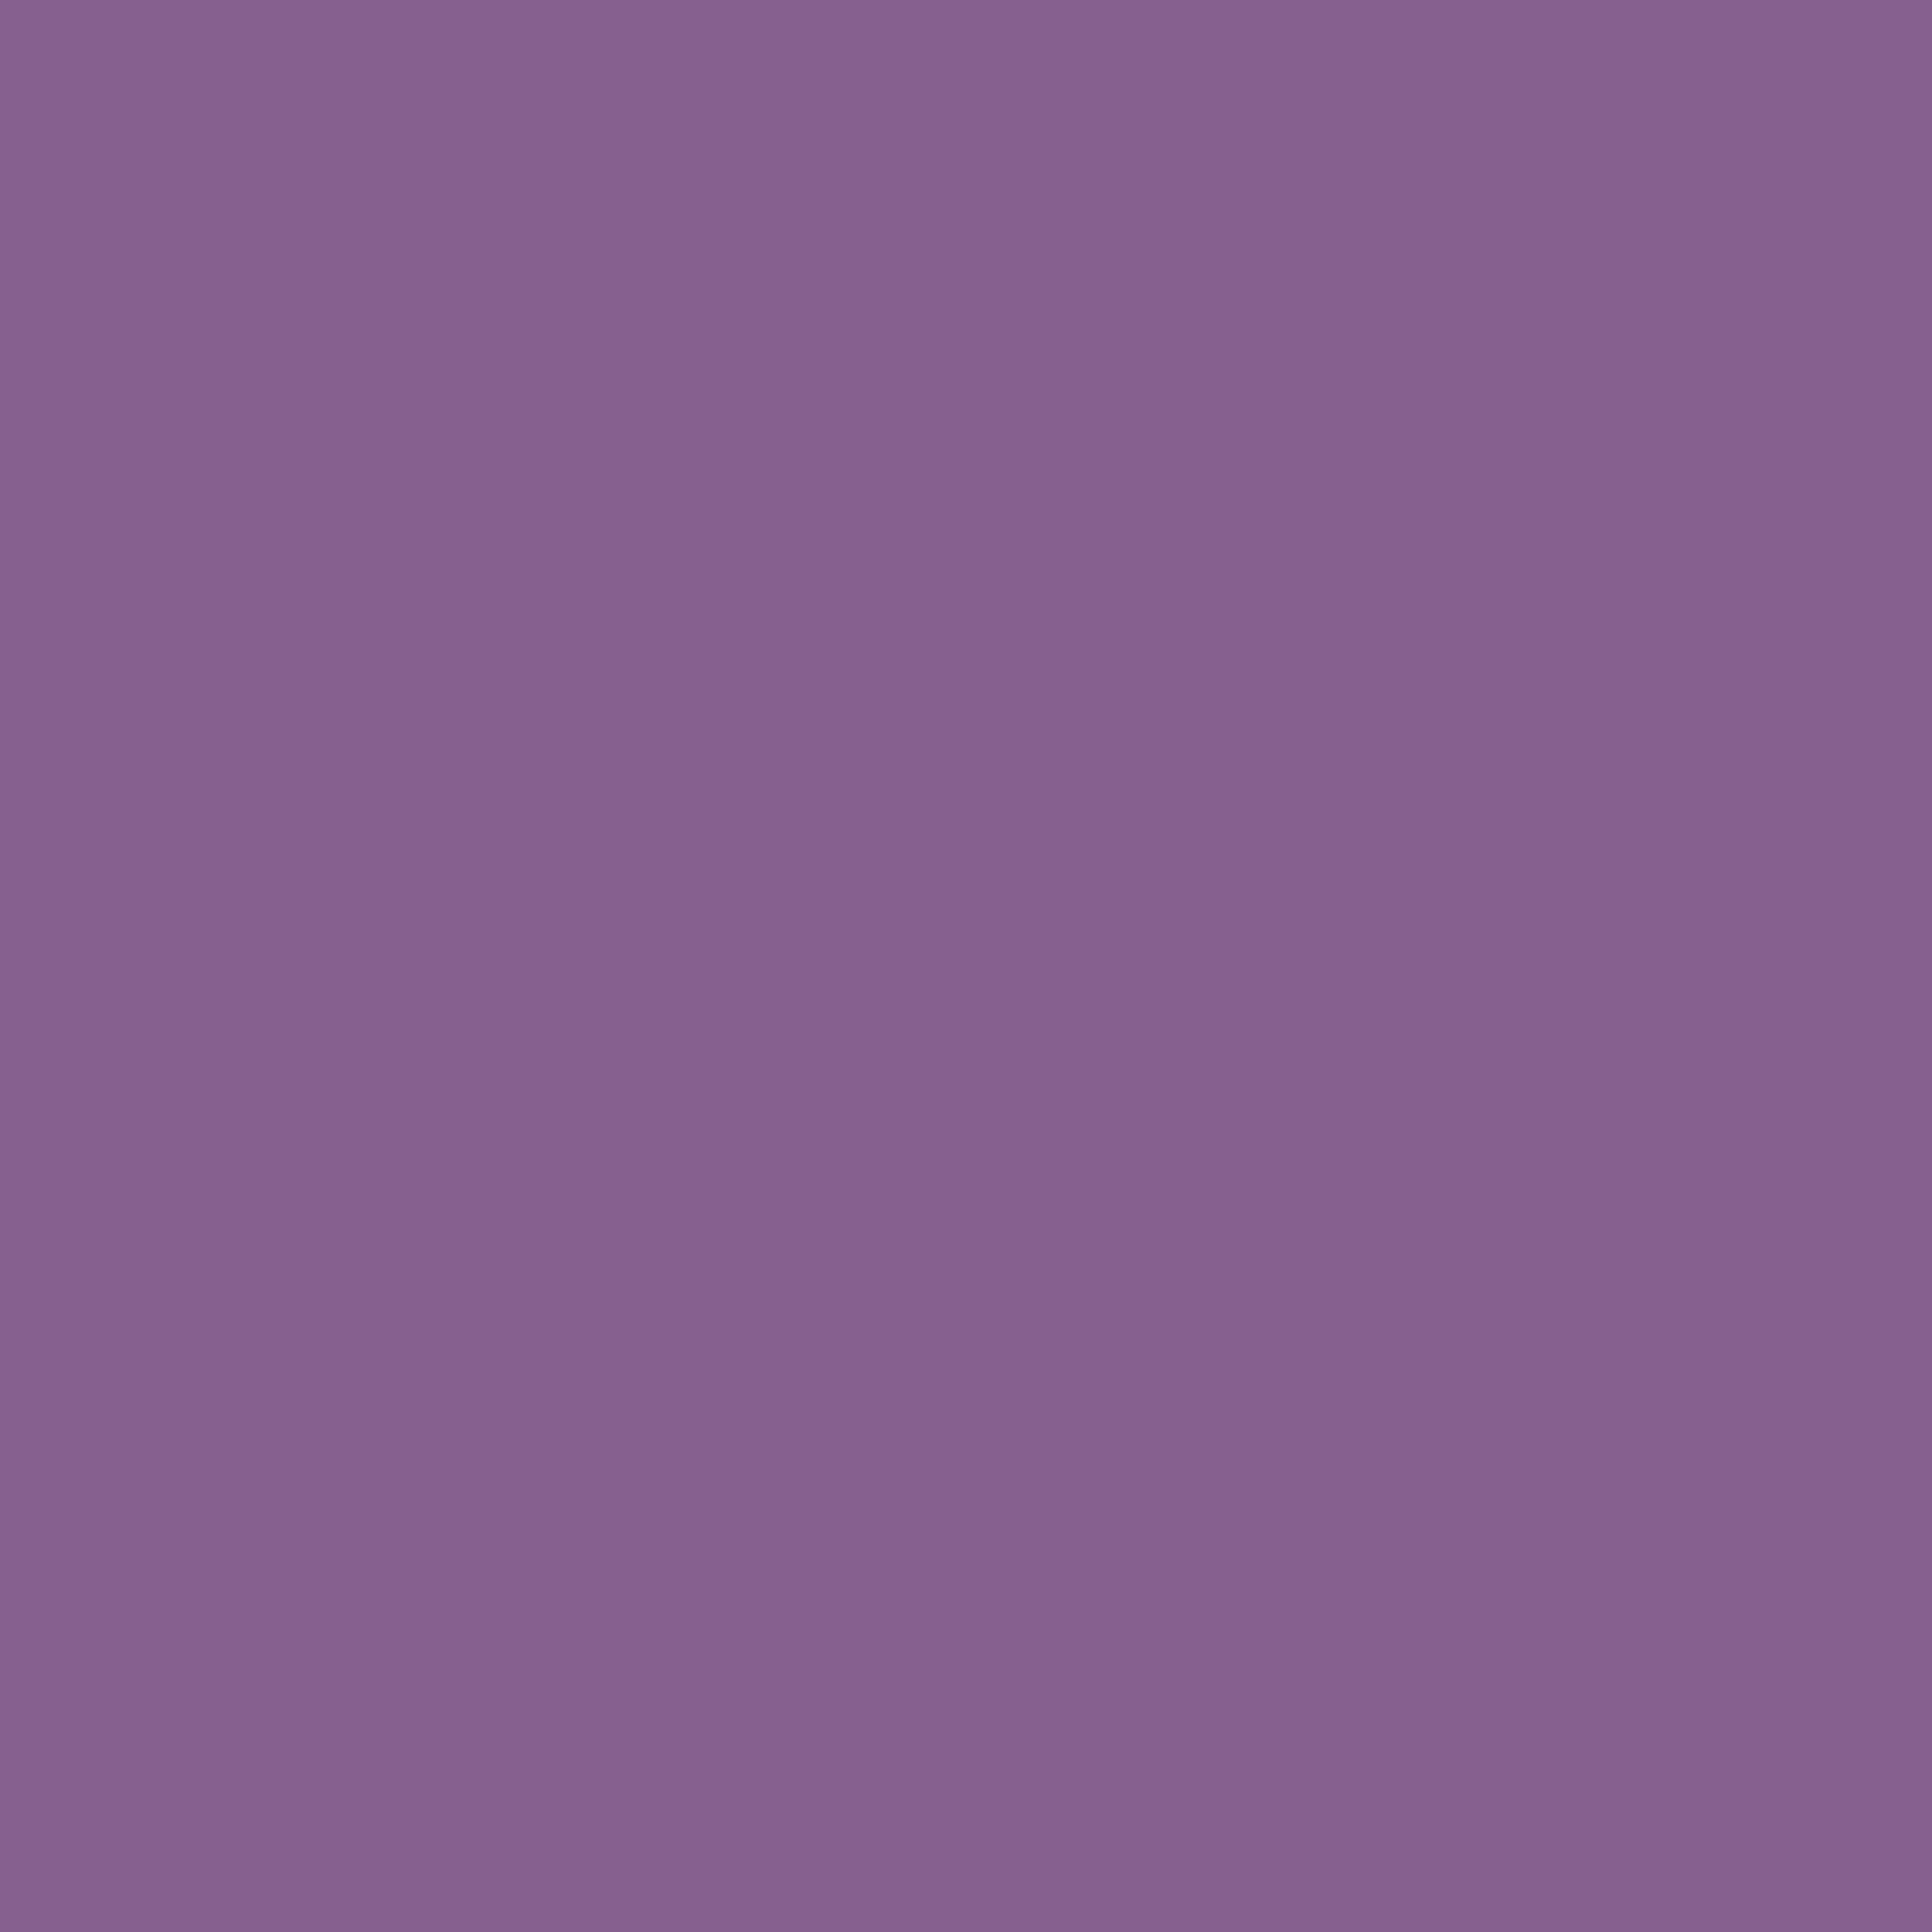 2732x2732 French Lilac Solid Color Background